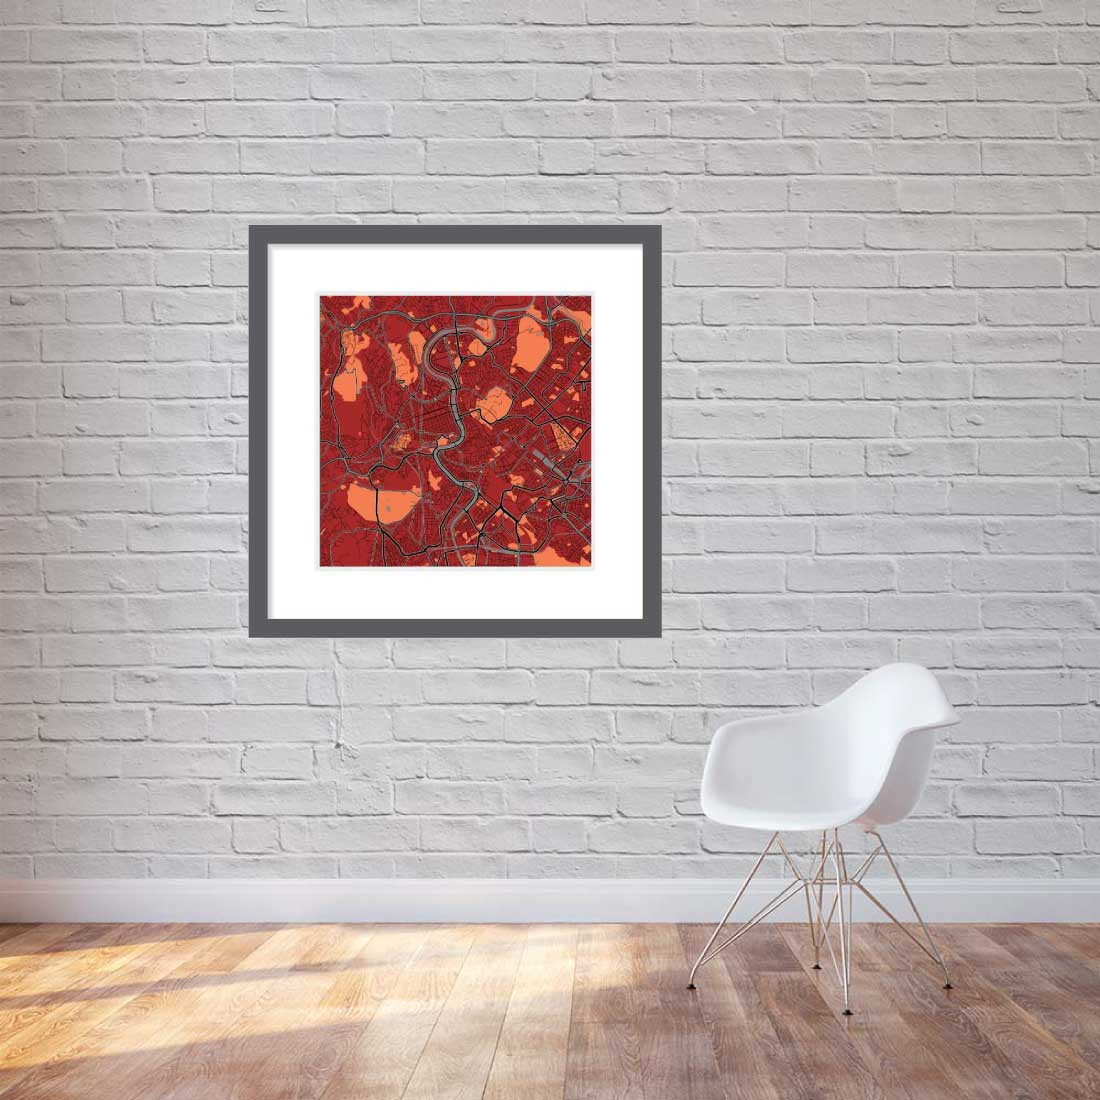 Matt print 90cmx90cm Rome Stylish Brick